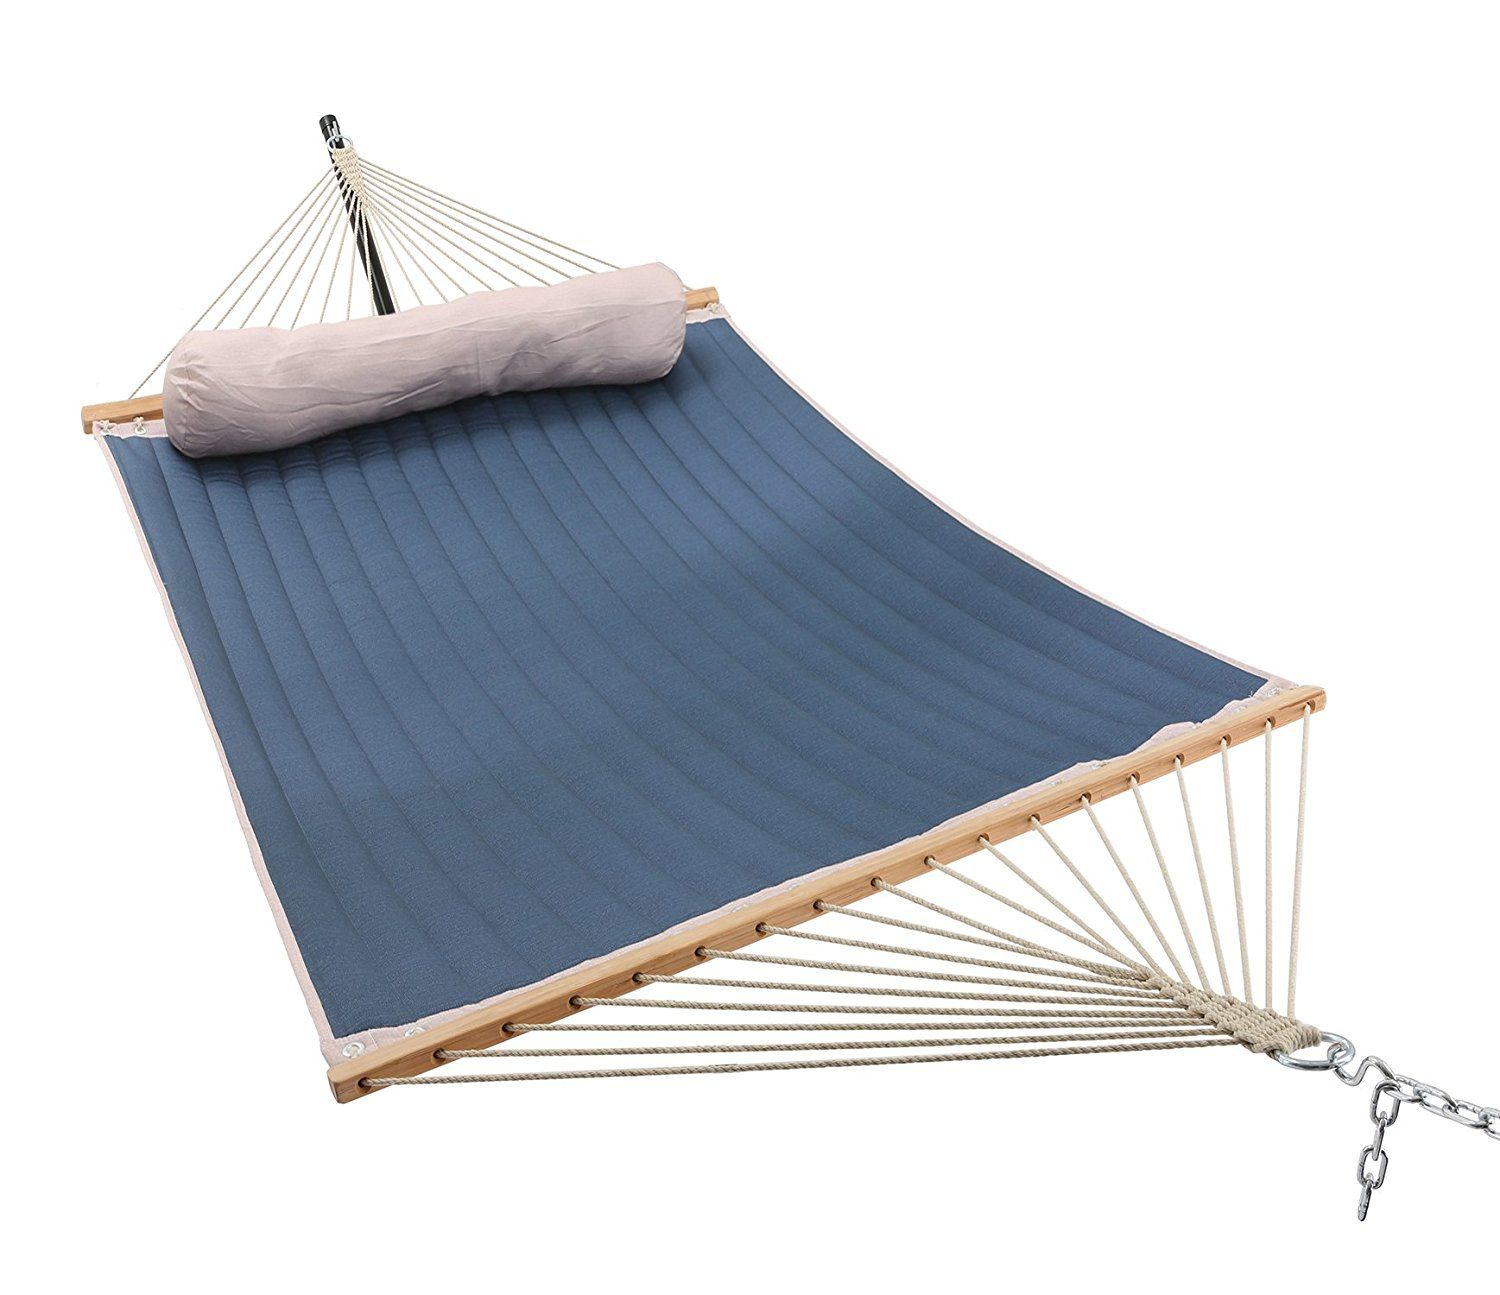 Patio watcher quilted hammock this rope hammock can be hung indoor